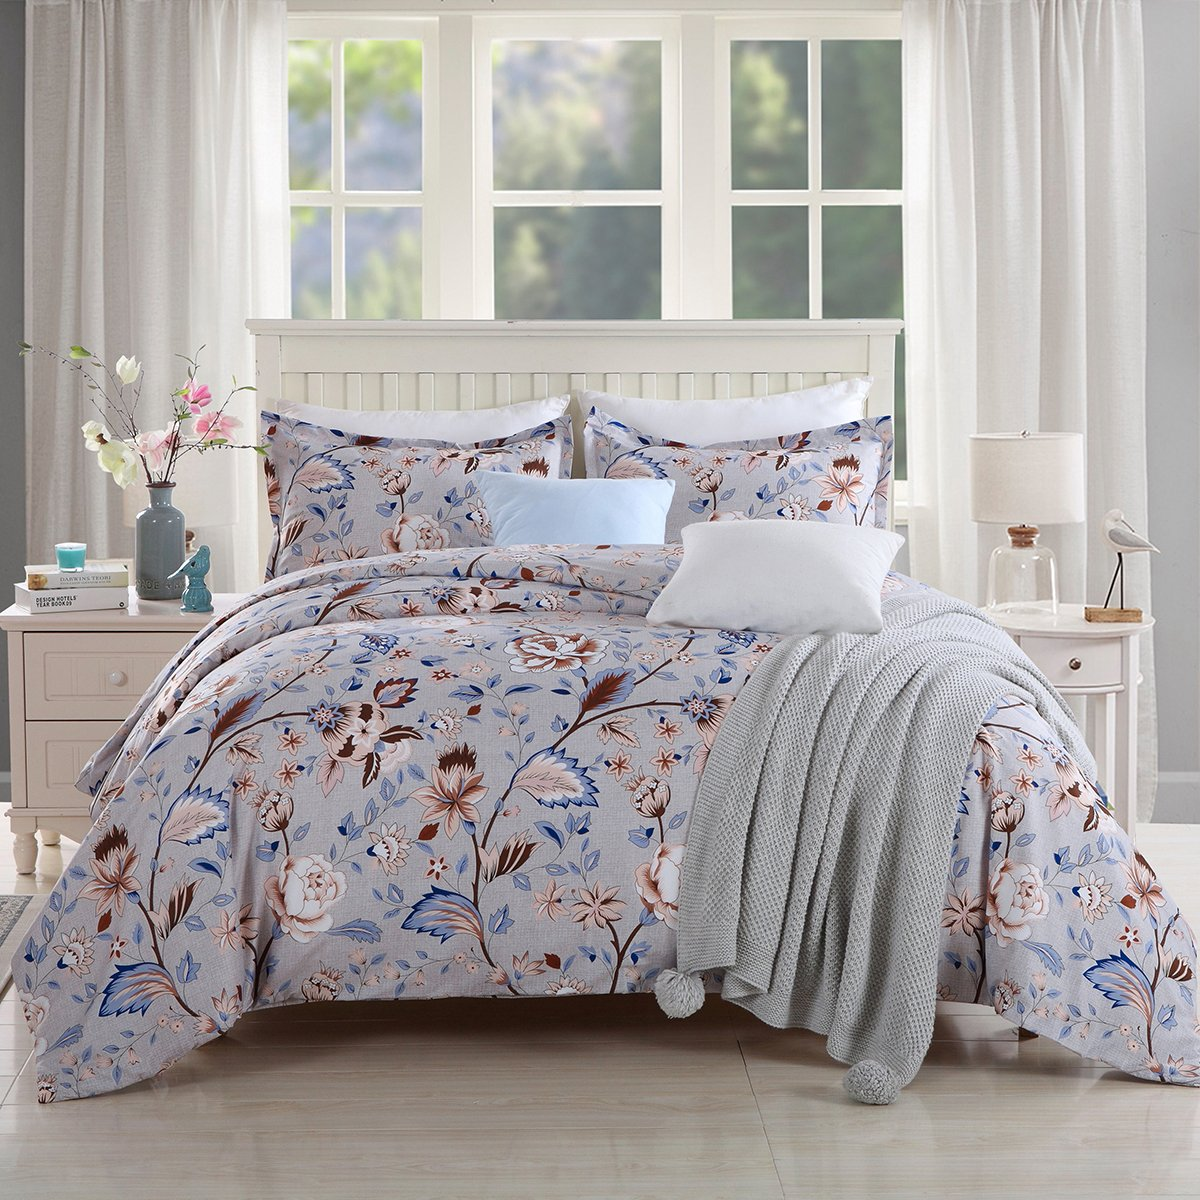 GOOFUN-D31Q Duvet Cover Bedding Set 3pcs Lightweight Microfiber Well Designed Extremely Durable, Full/Queen Size